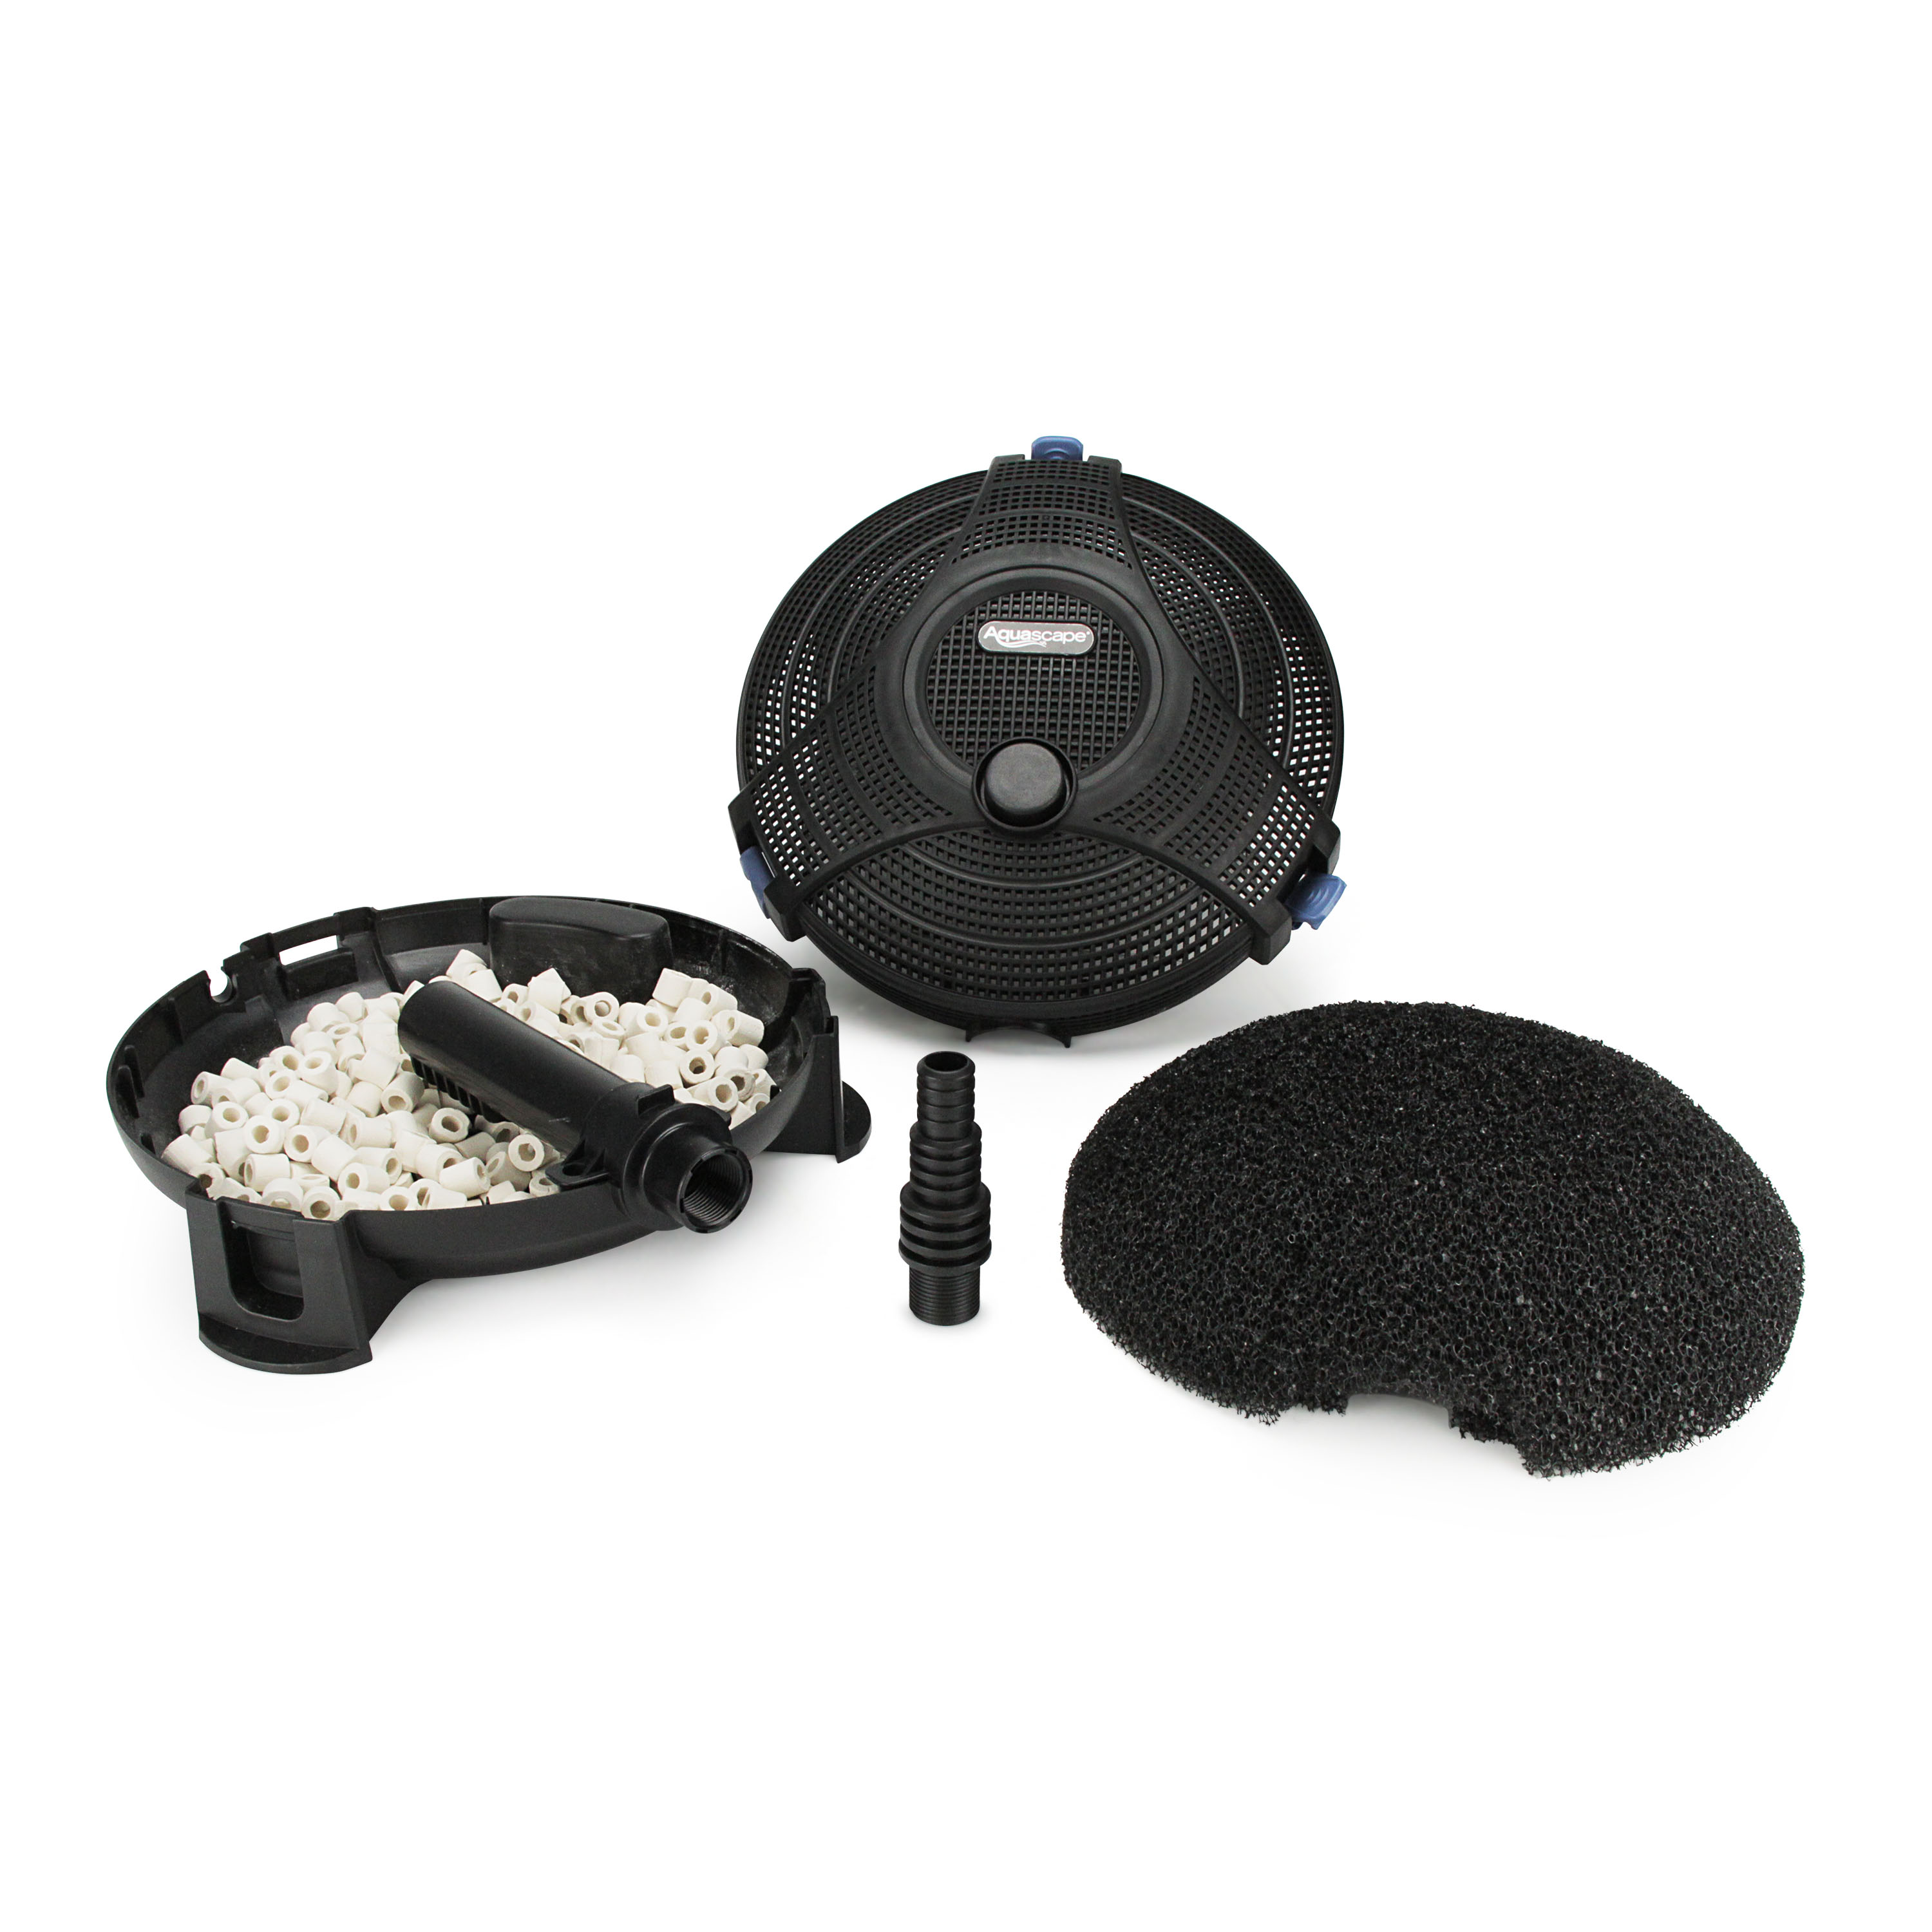 Filter foam aquascape submersible pond filter aquascapes for Pond accessories